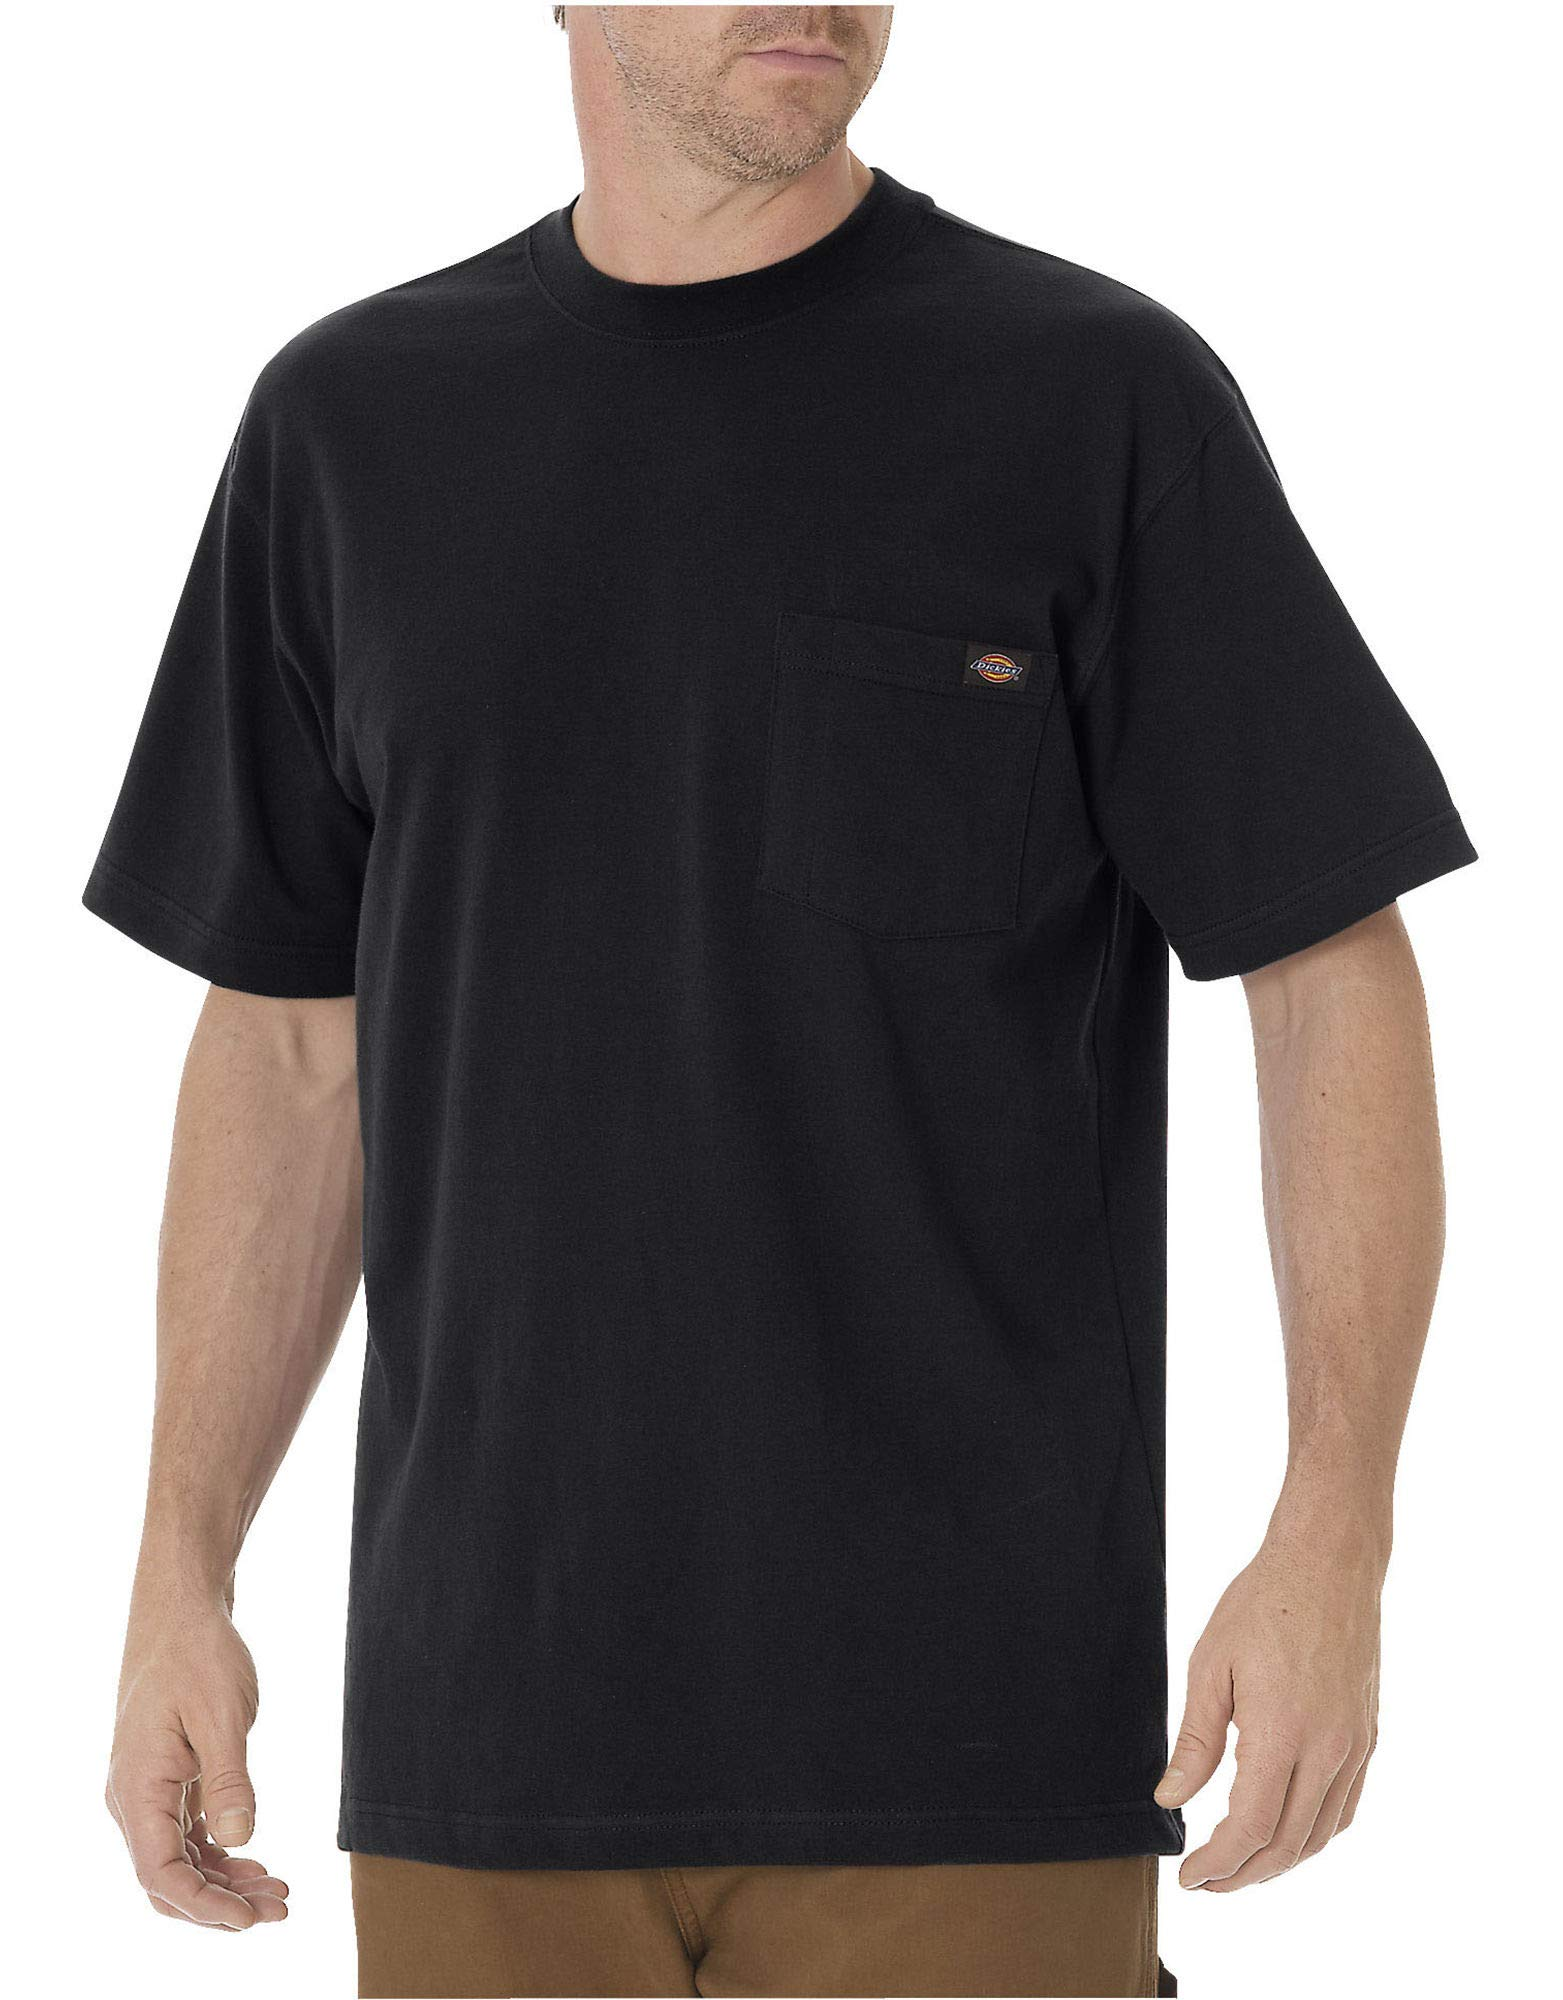 Dickies Men's Heavyweight Crew Neck Shirt, Black, Large (2 Pack)